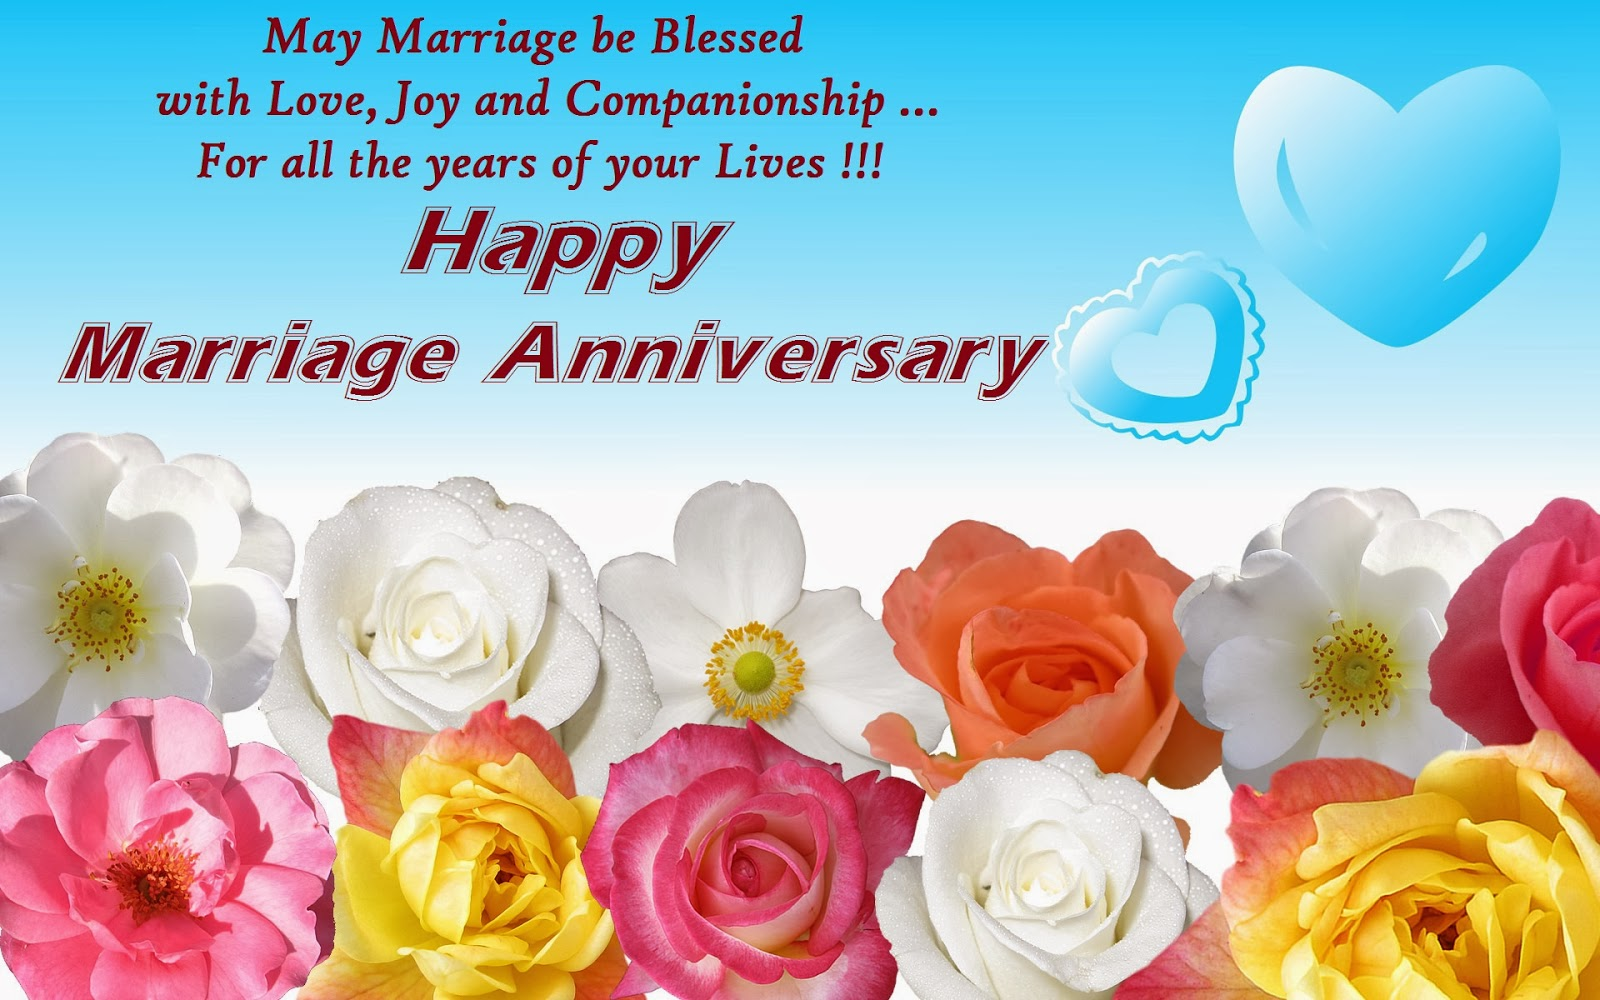 Happy wedding anniversary romantic love messages for wife wedding religious wife wedding anniversary wishes messages m4hsunfo Image collections